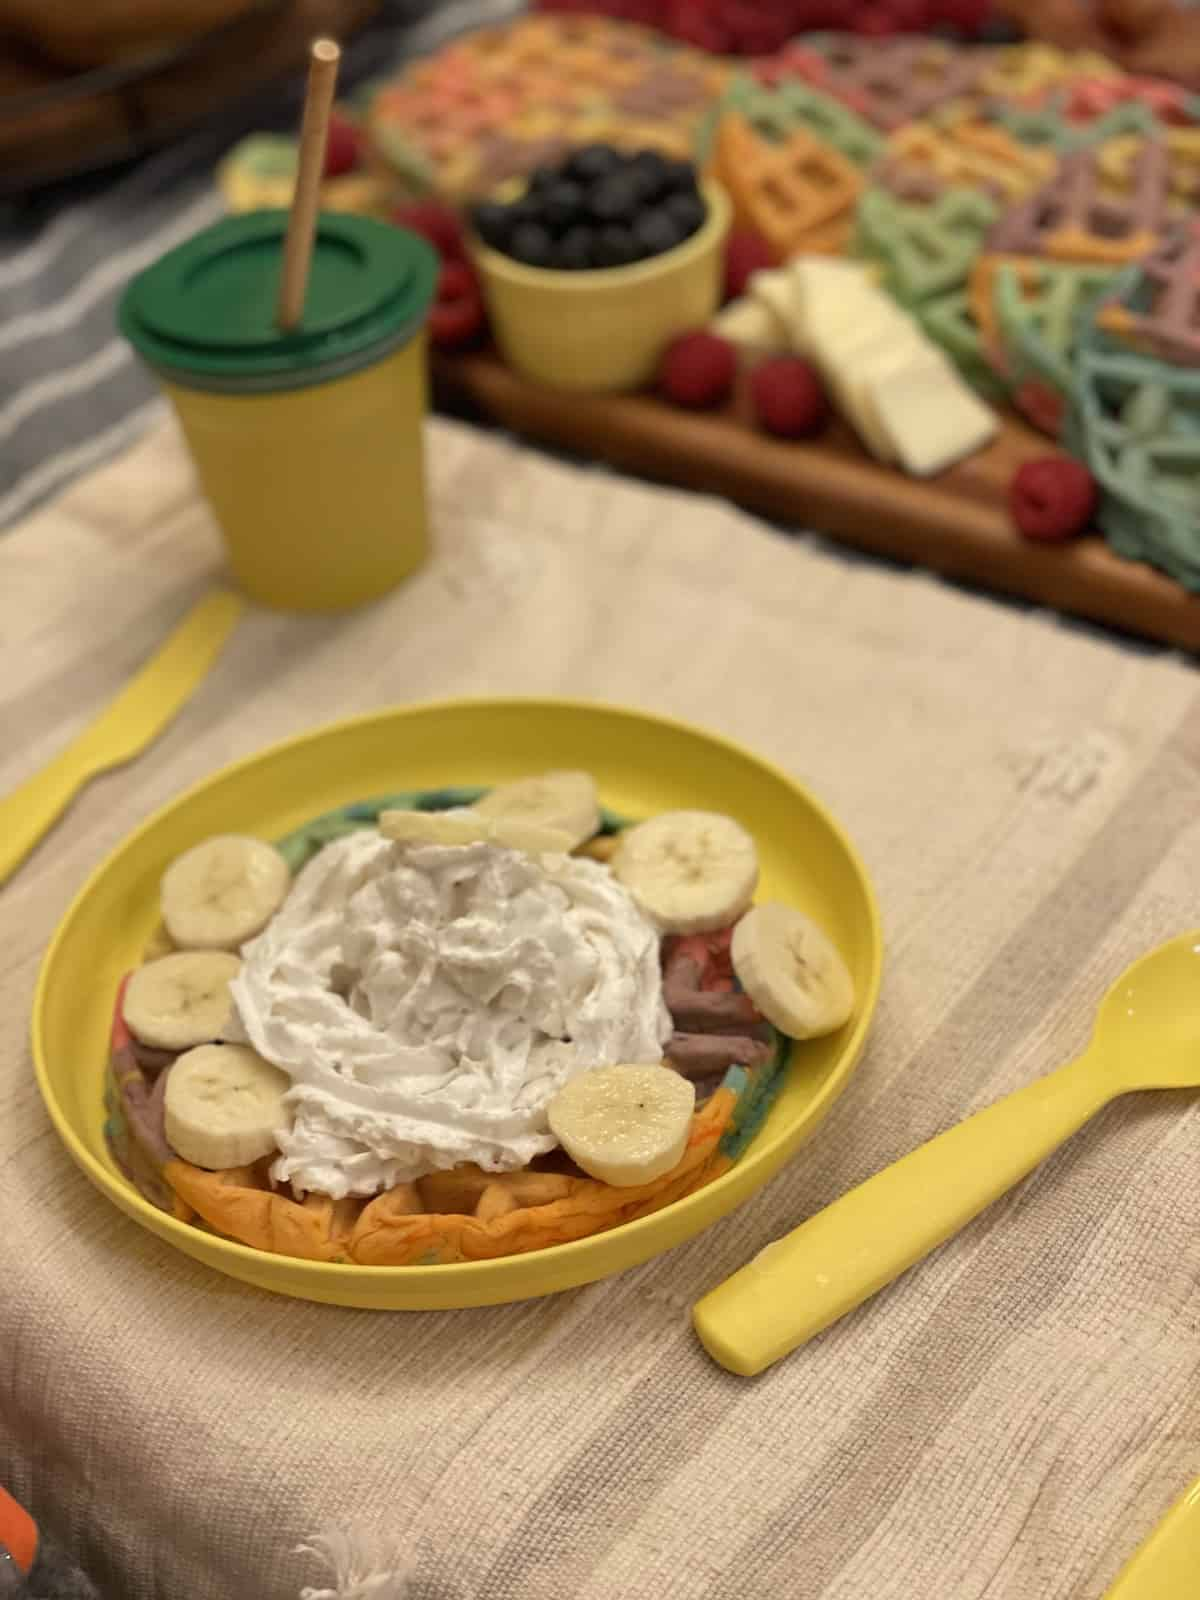 a rainbow waffle on a yellow plate with whipped cream and bananas